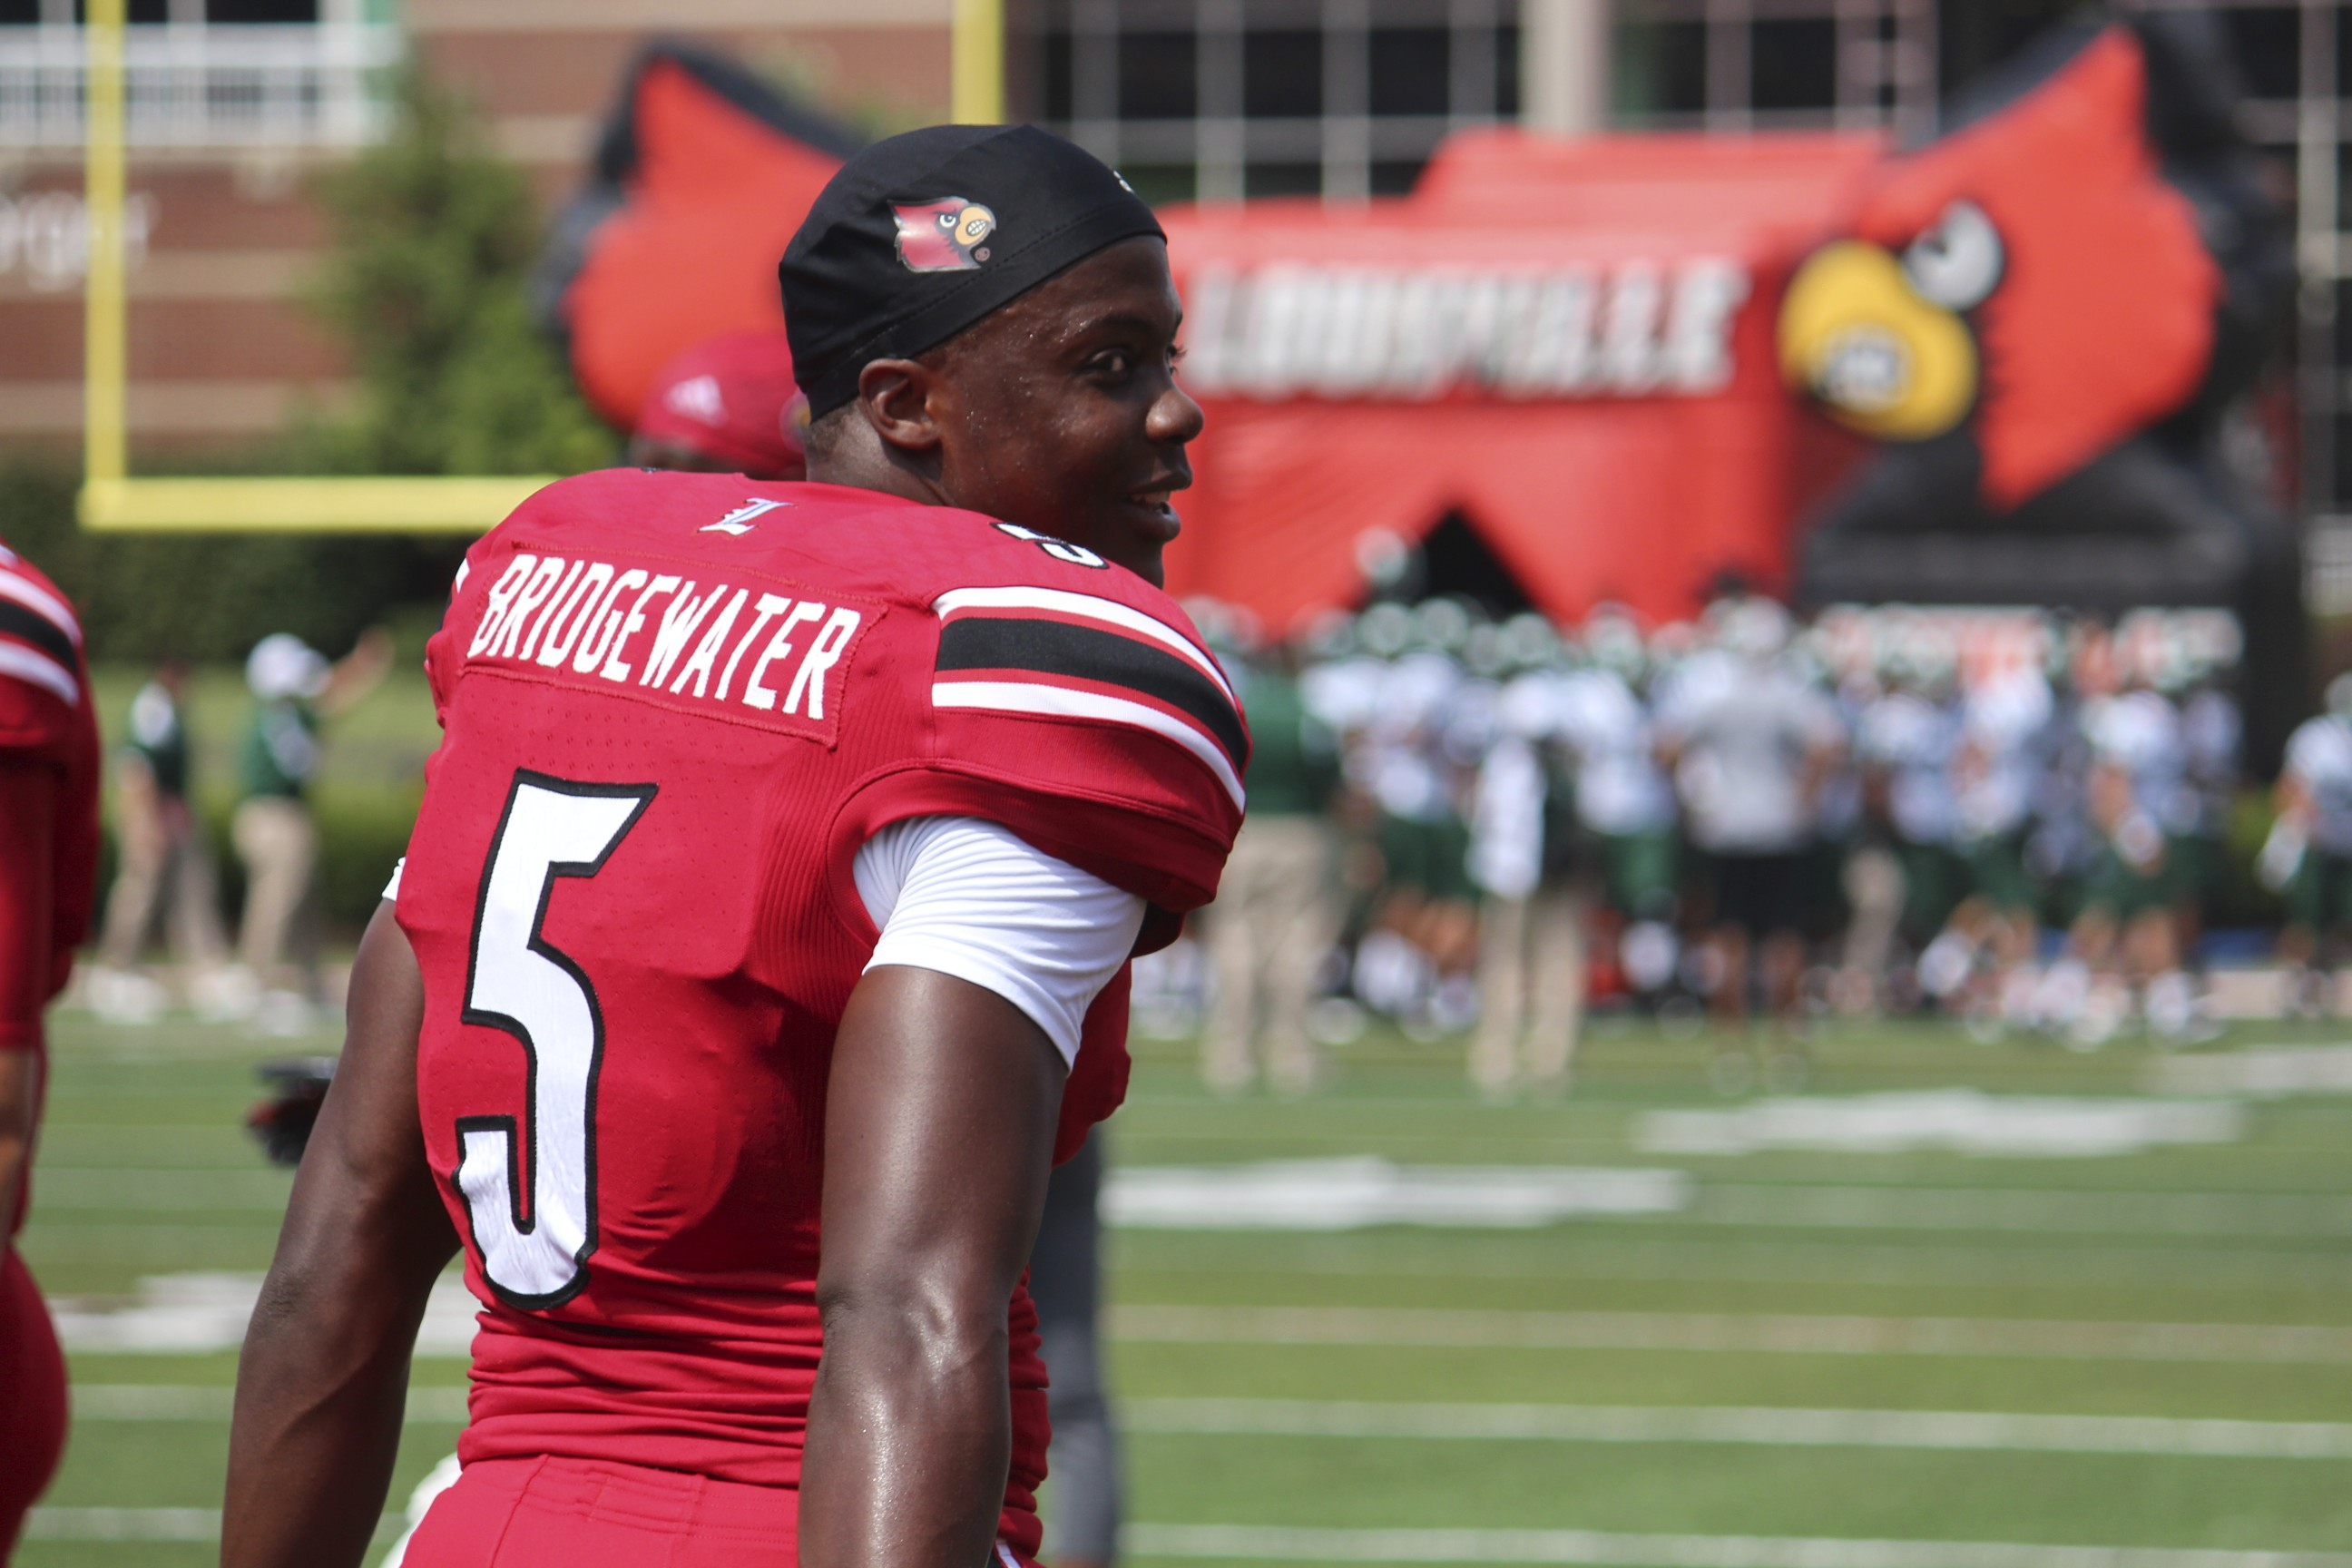 Teddy Bridgewater Louisville vs. Ohio 2013 Photo by Mike Lindsay